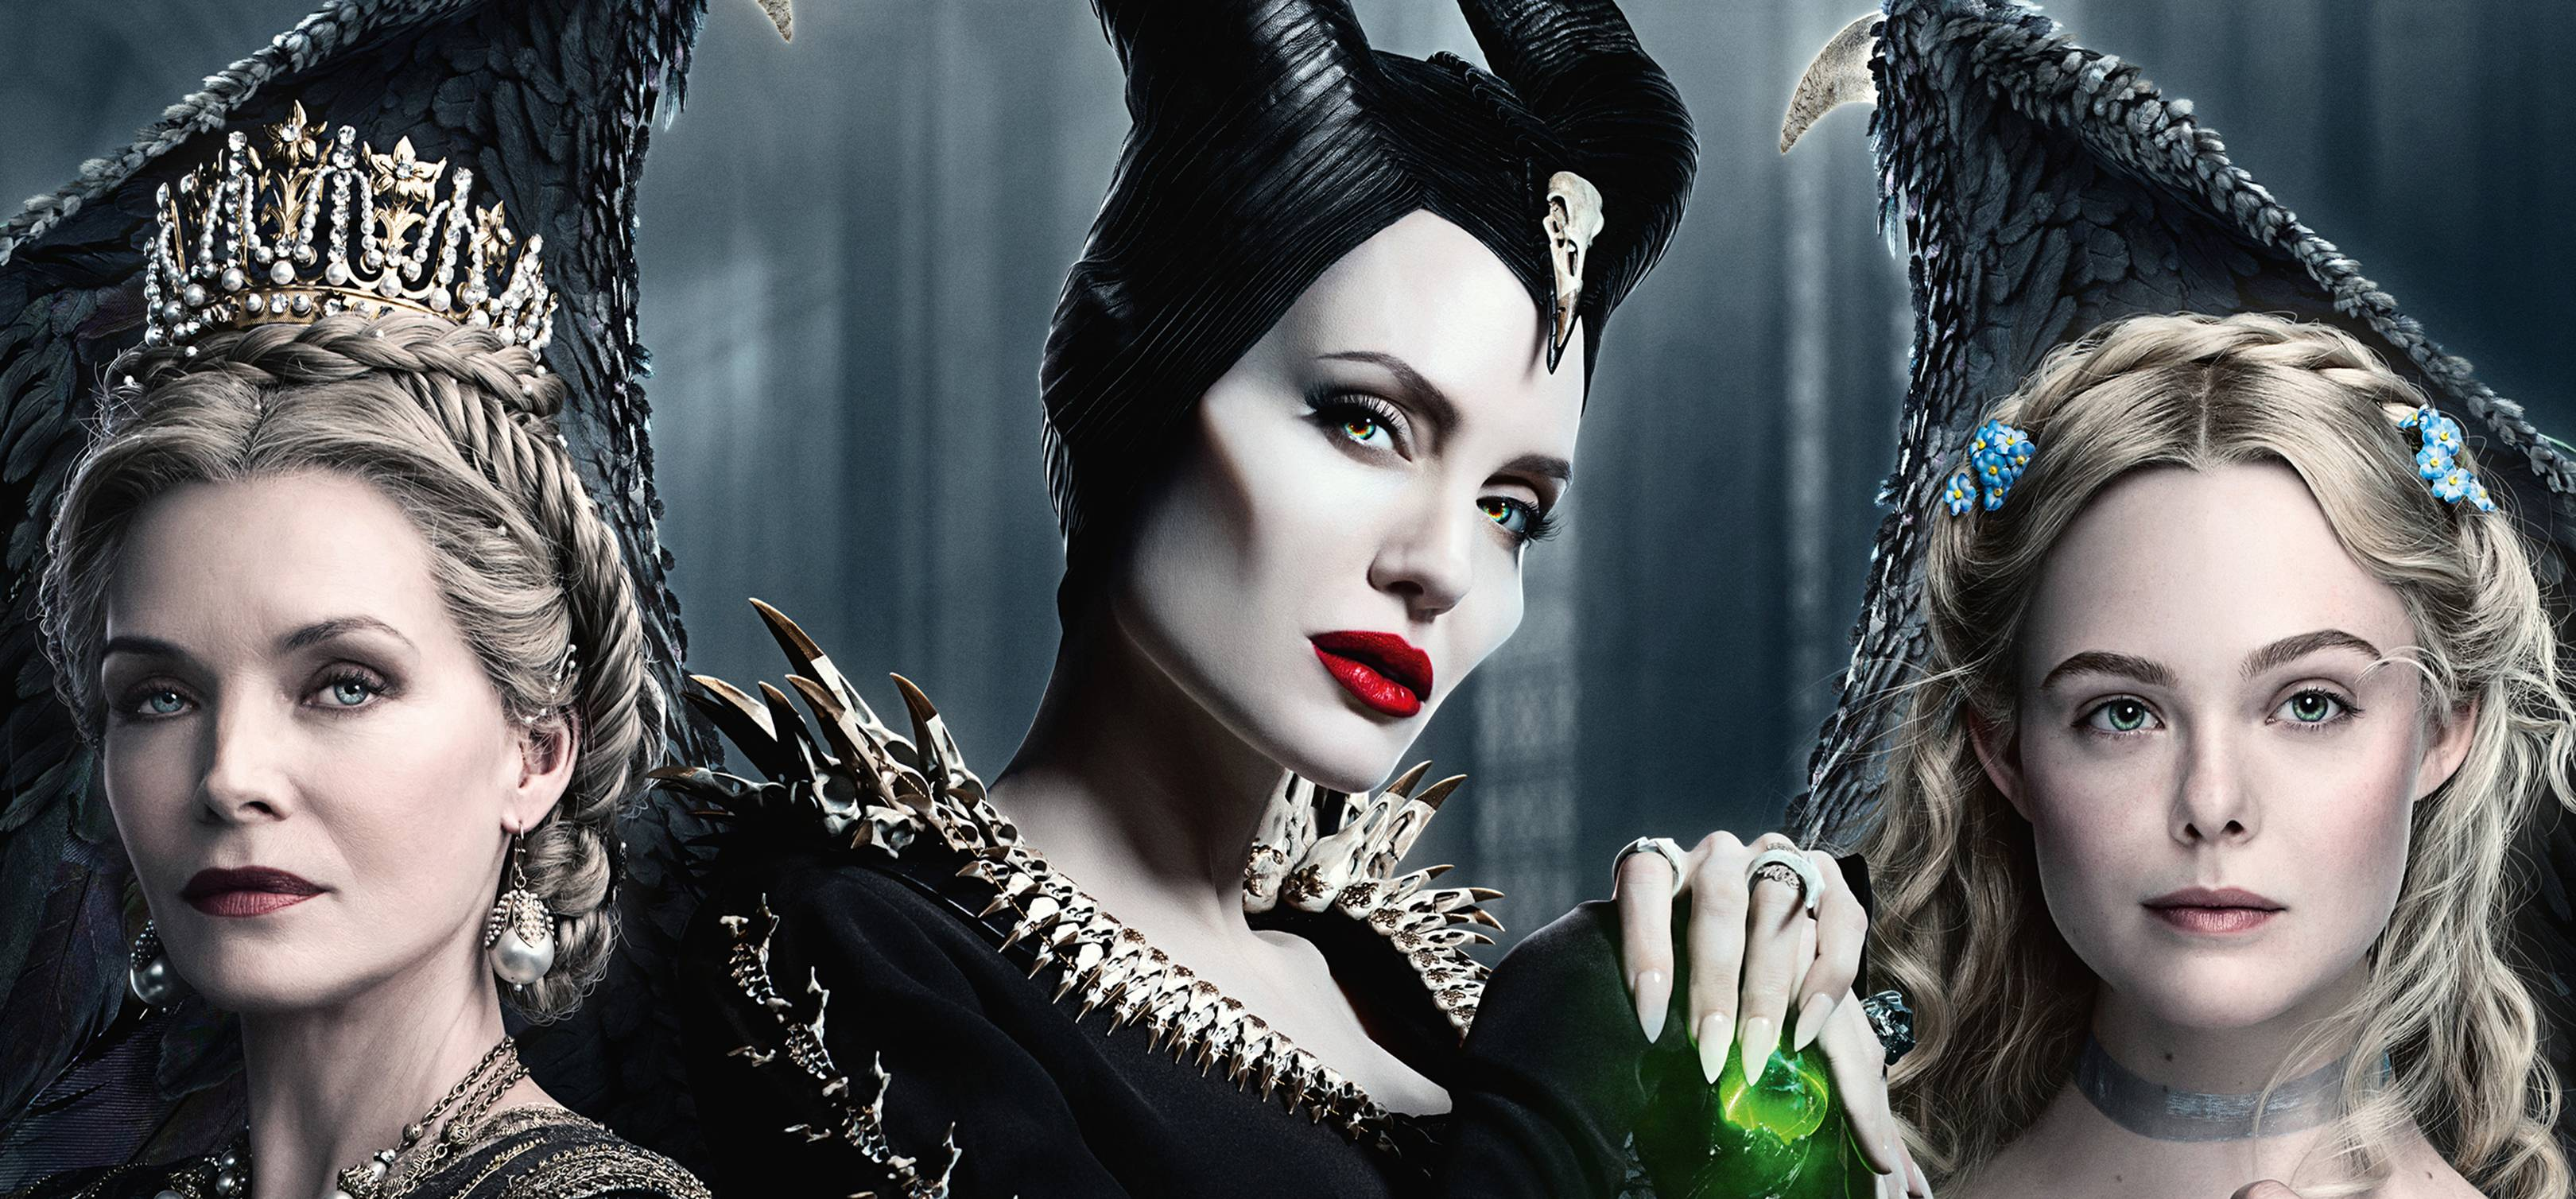 Maleficent Mistress Of Evil Will Provide All The Halloween